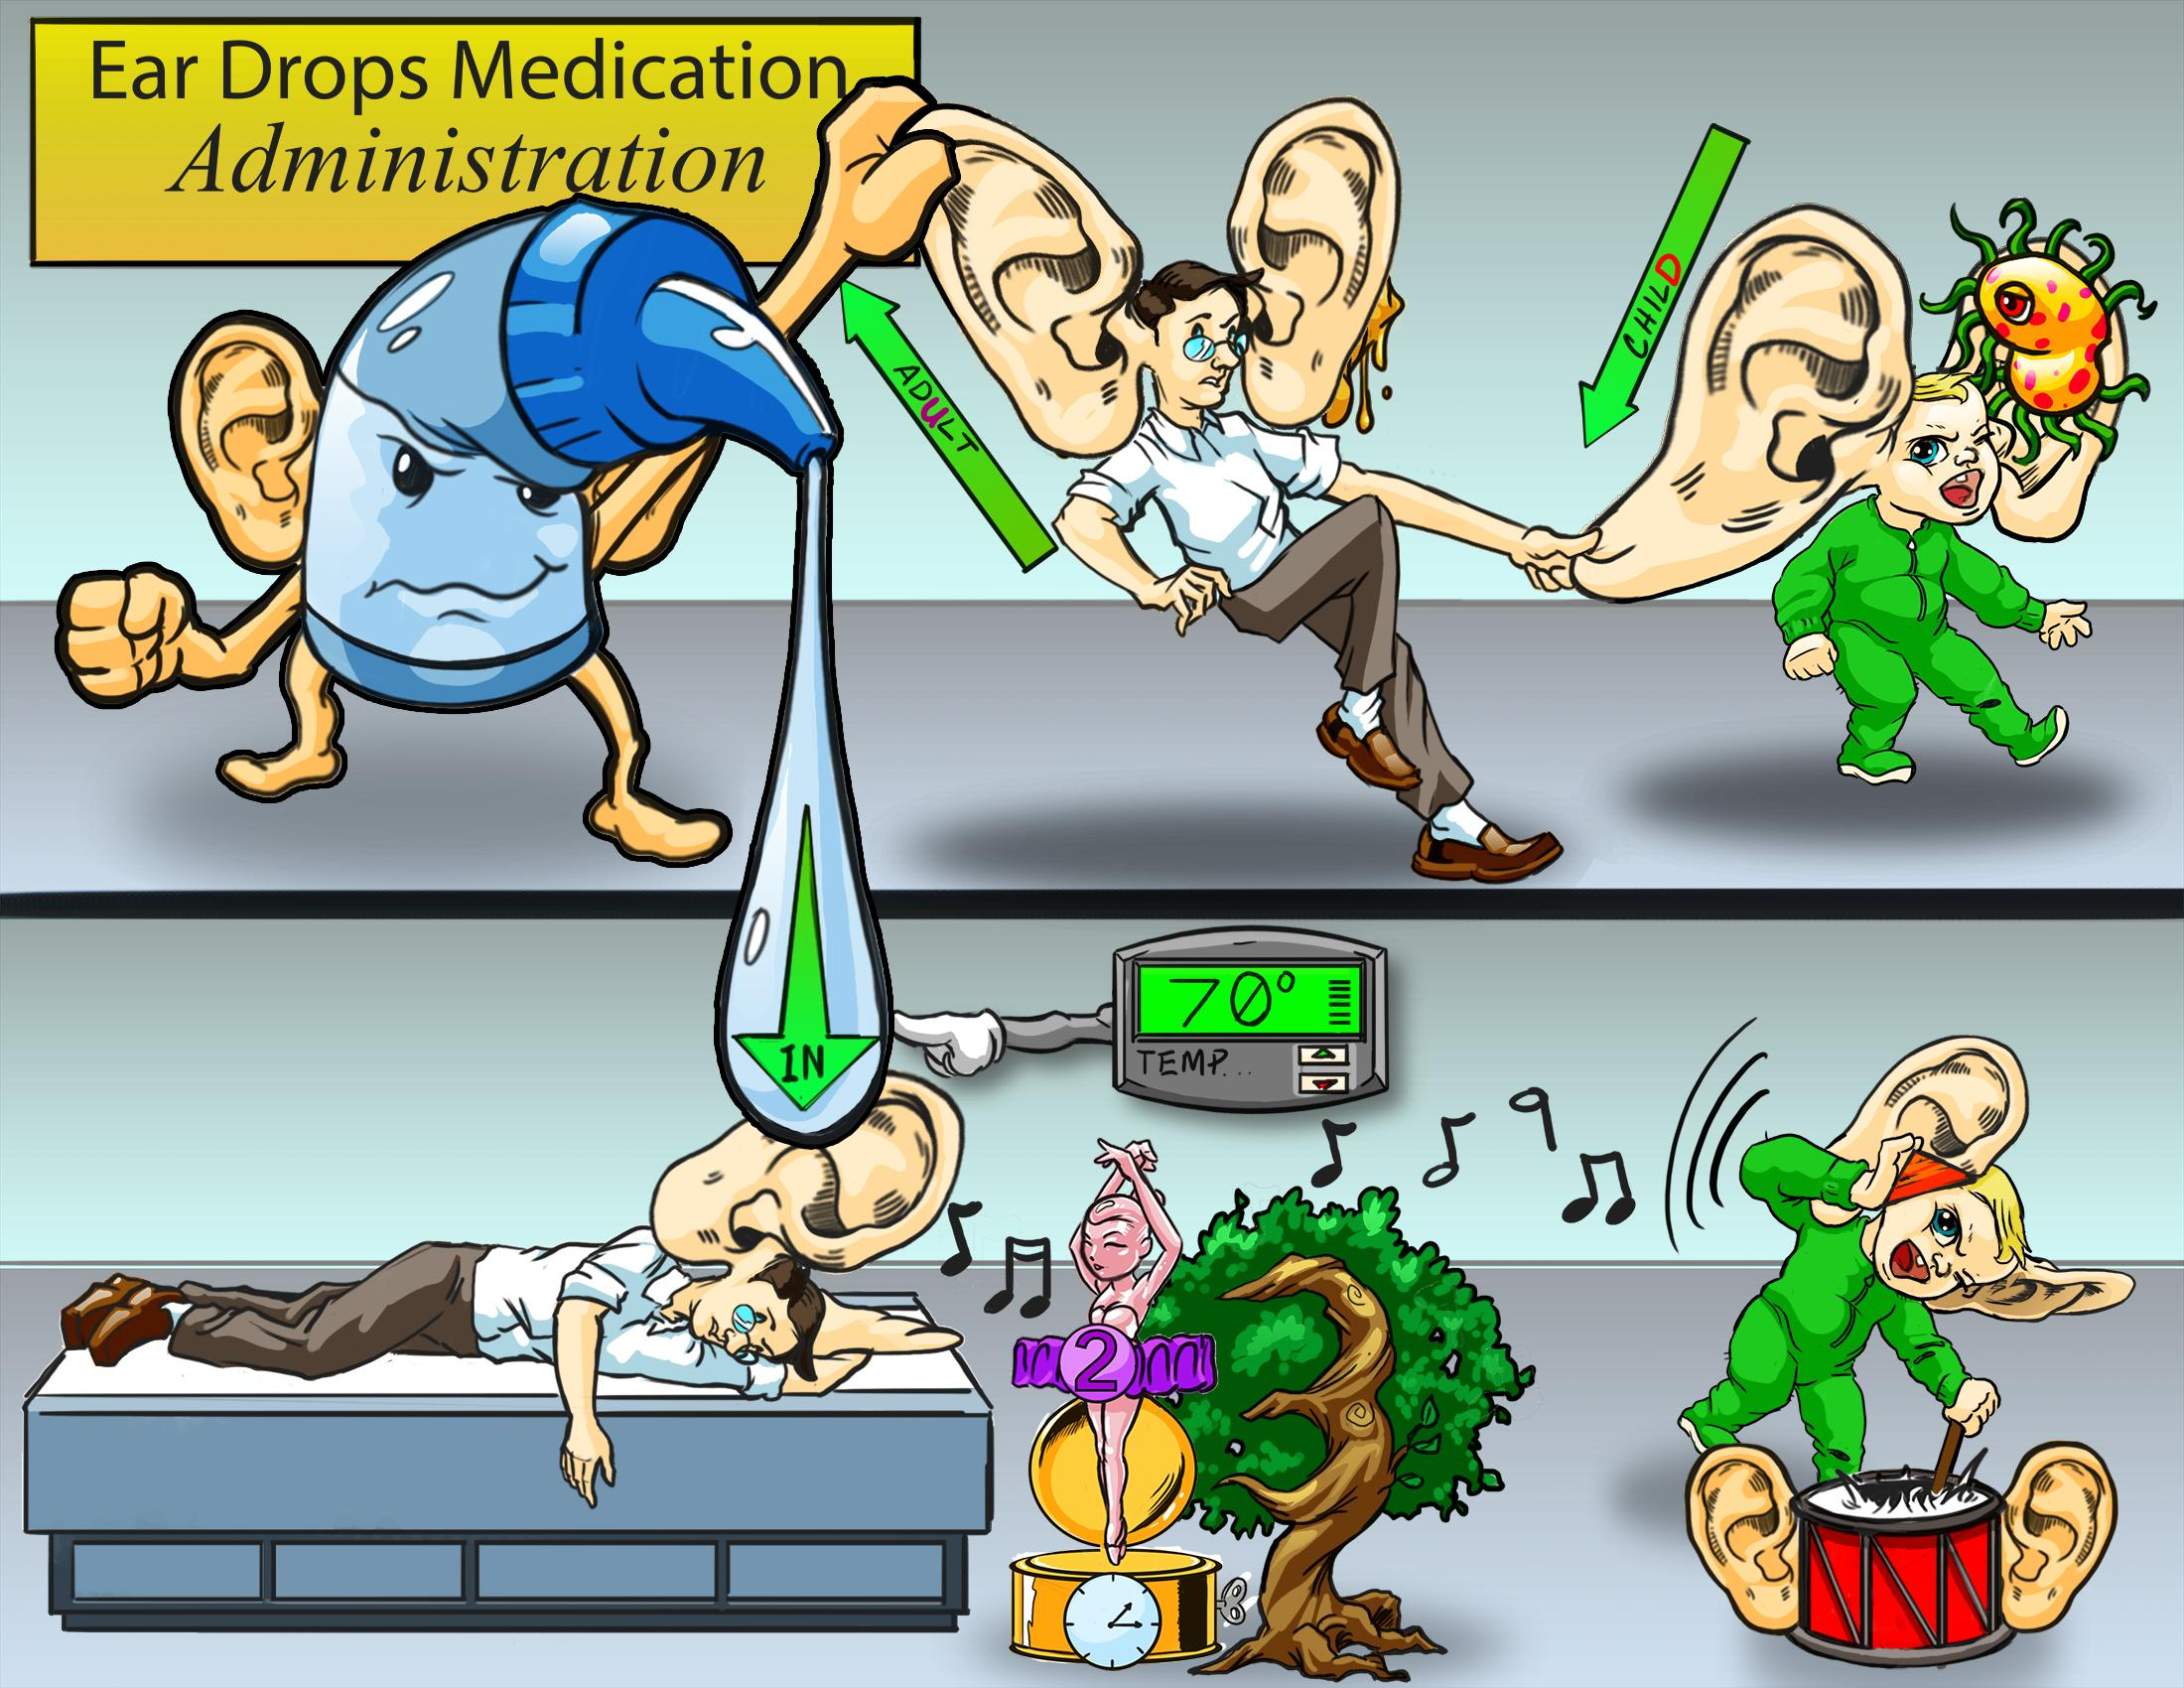 Ear Drops Medication Administration